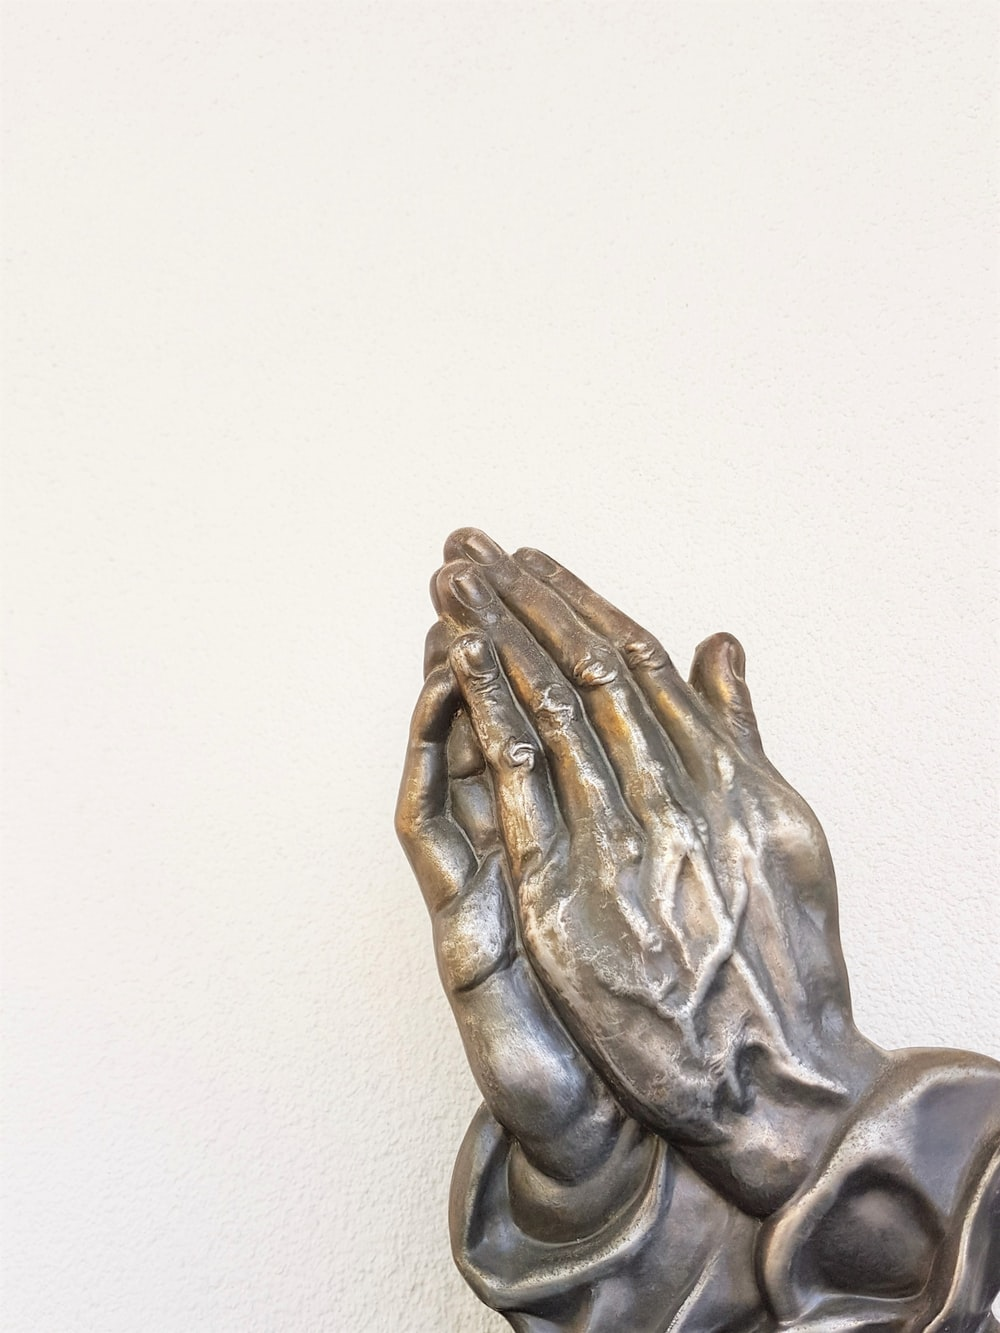 gray praying hand statue